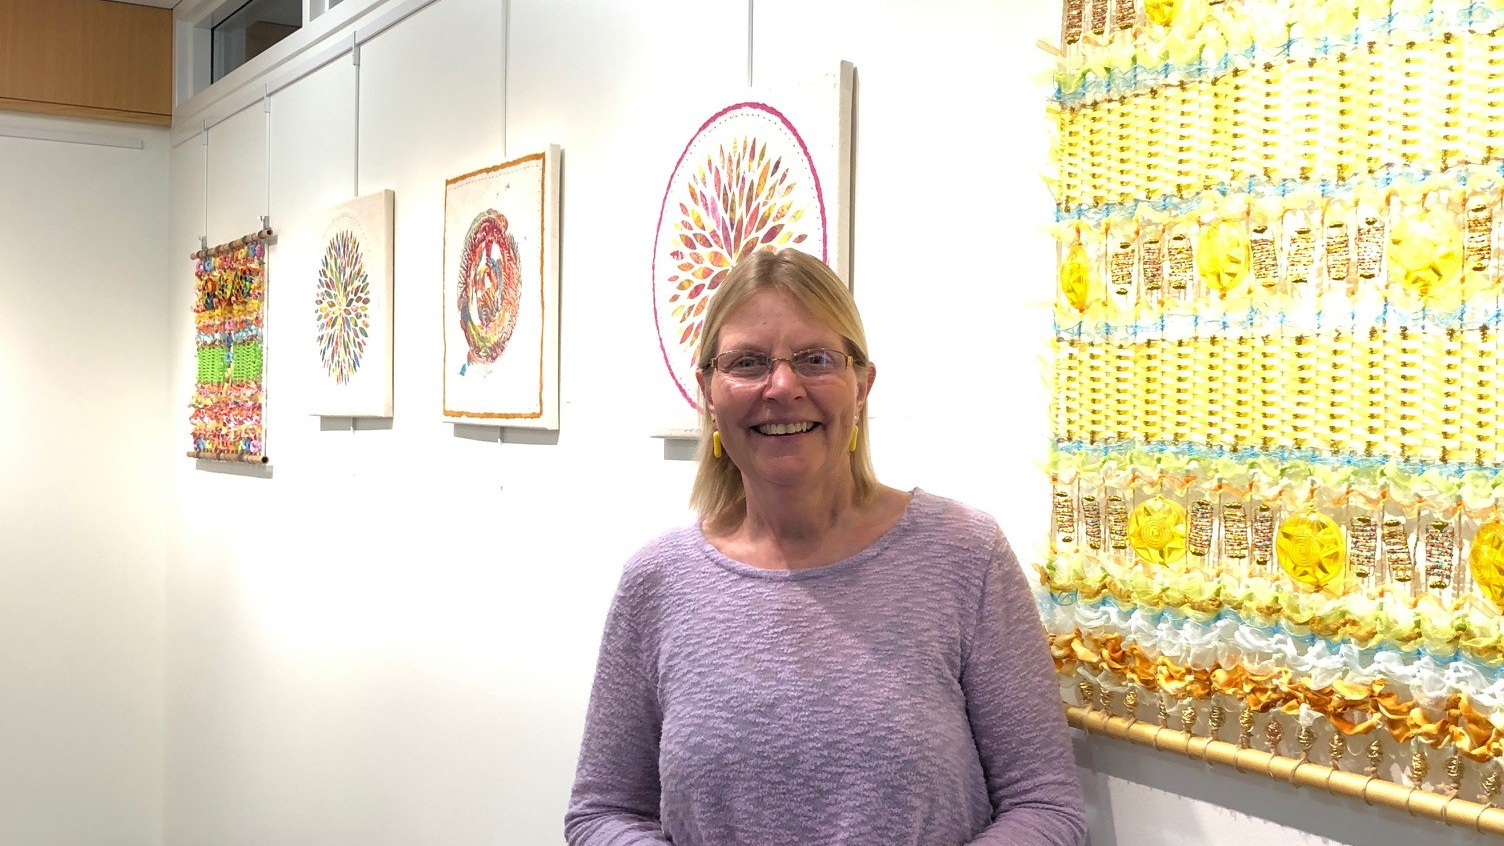 Downers Grove Library Art Display, Theresa Suchy McGraw